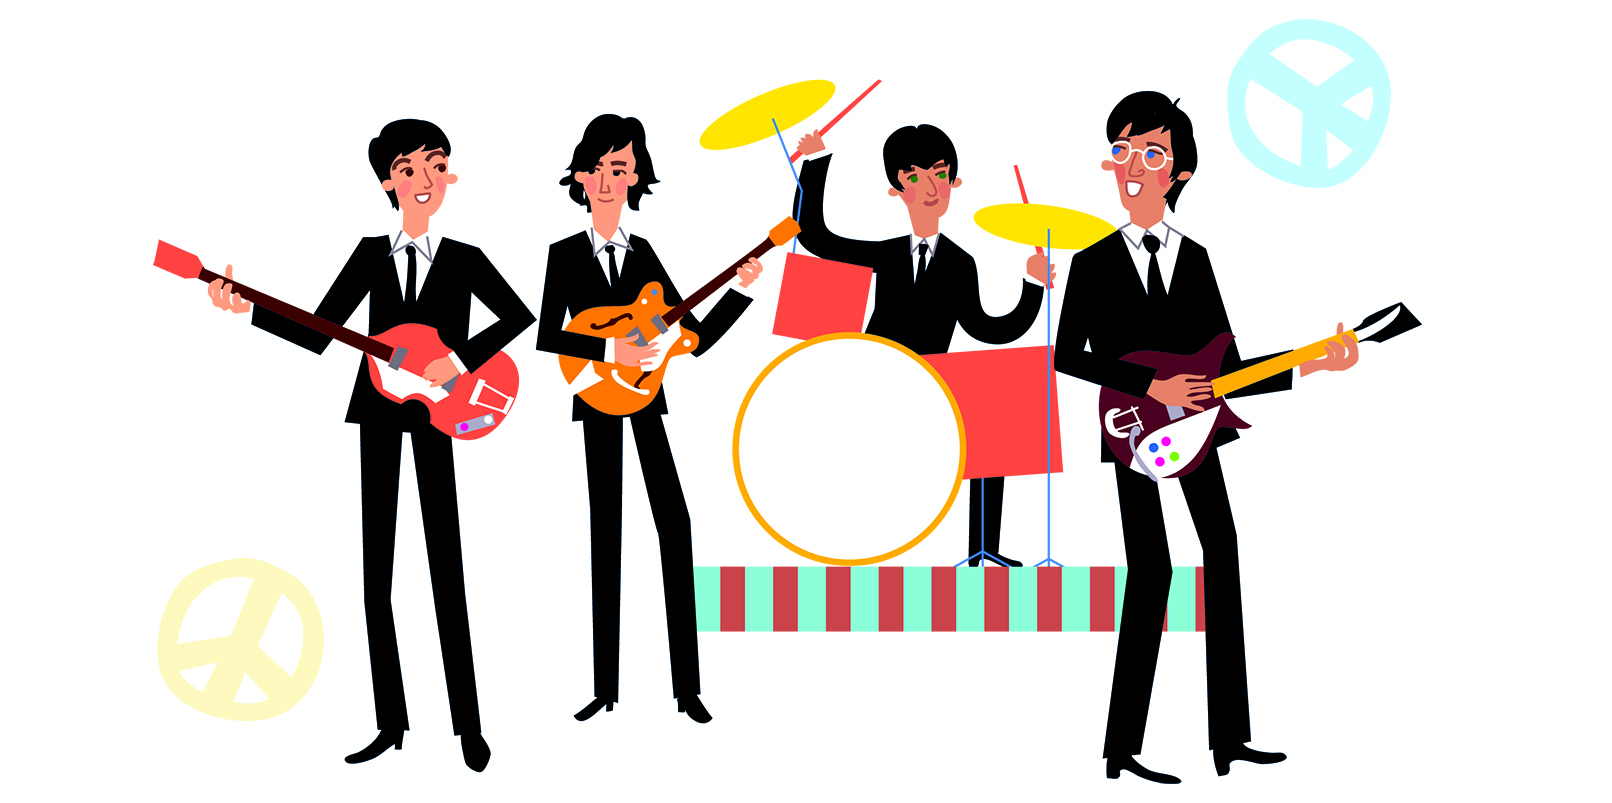 Check out this Beatles-inspired song written entirely by AI